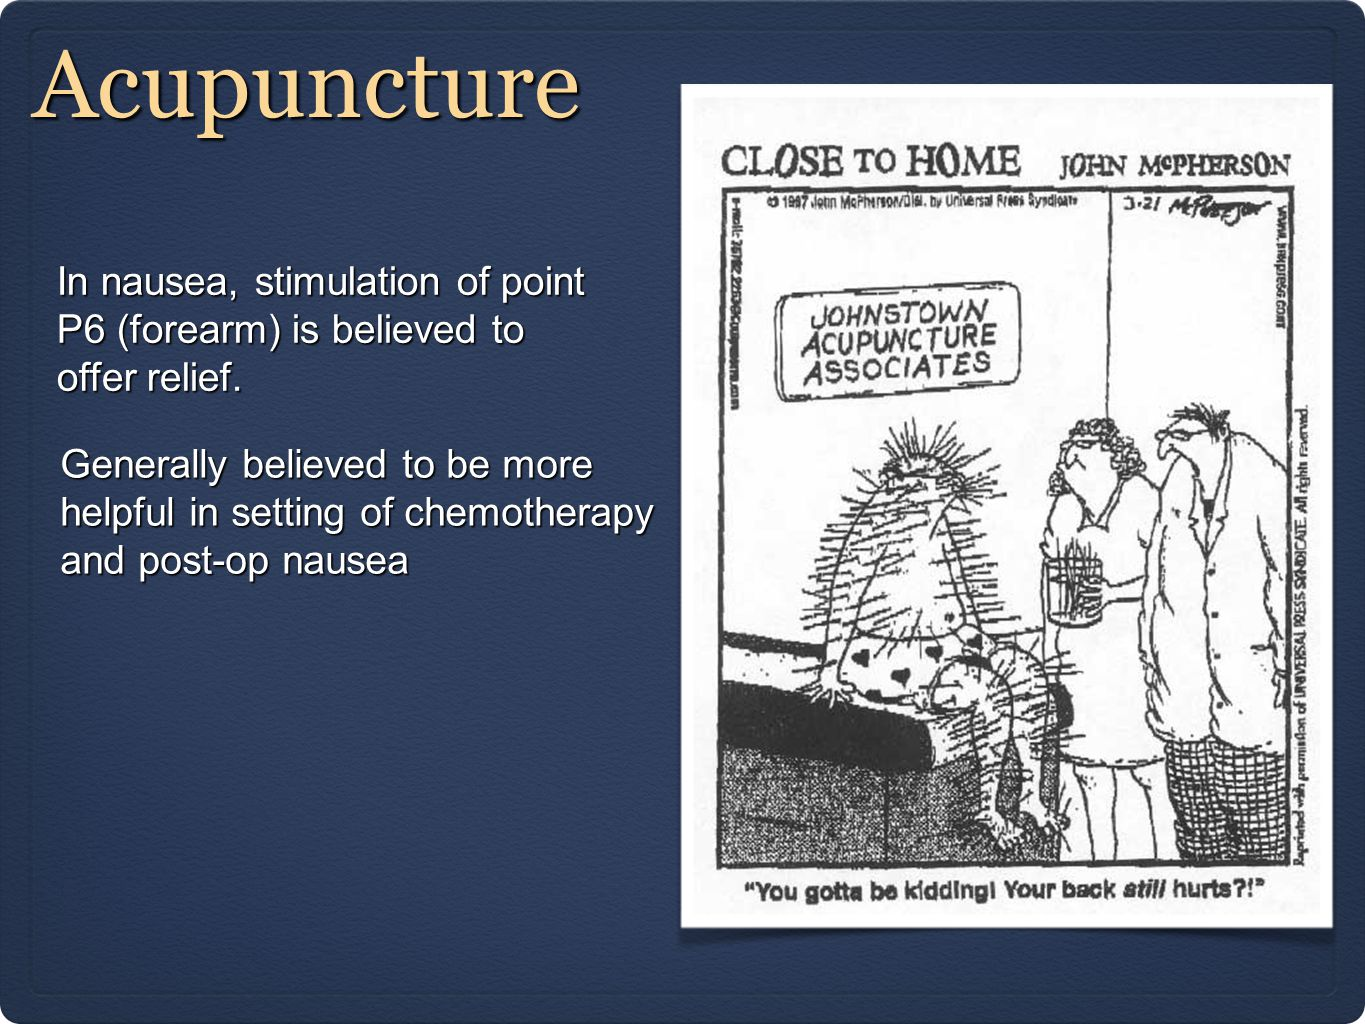 Acupuncture In nausea, stimulation of point P6 (forearm) is believed to offer relief.